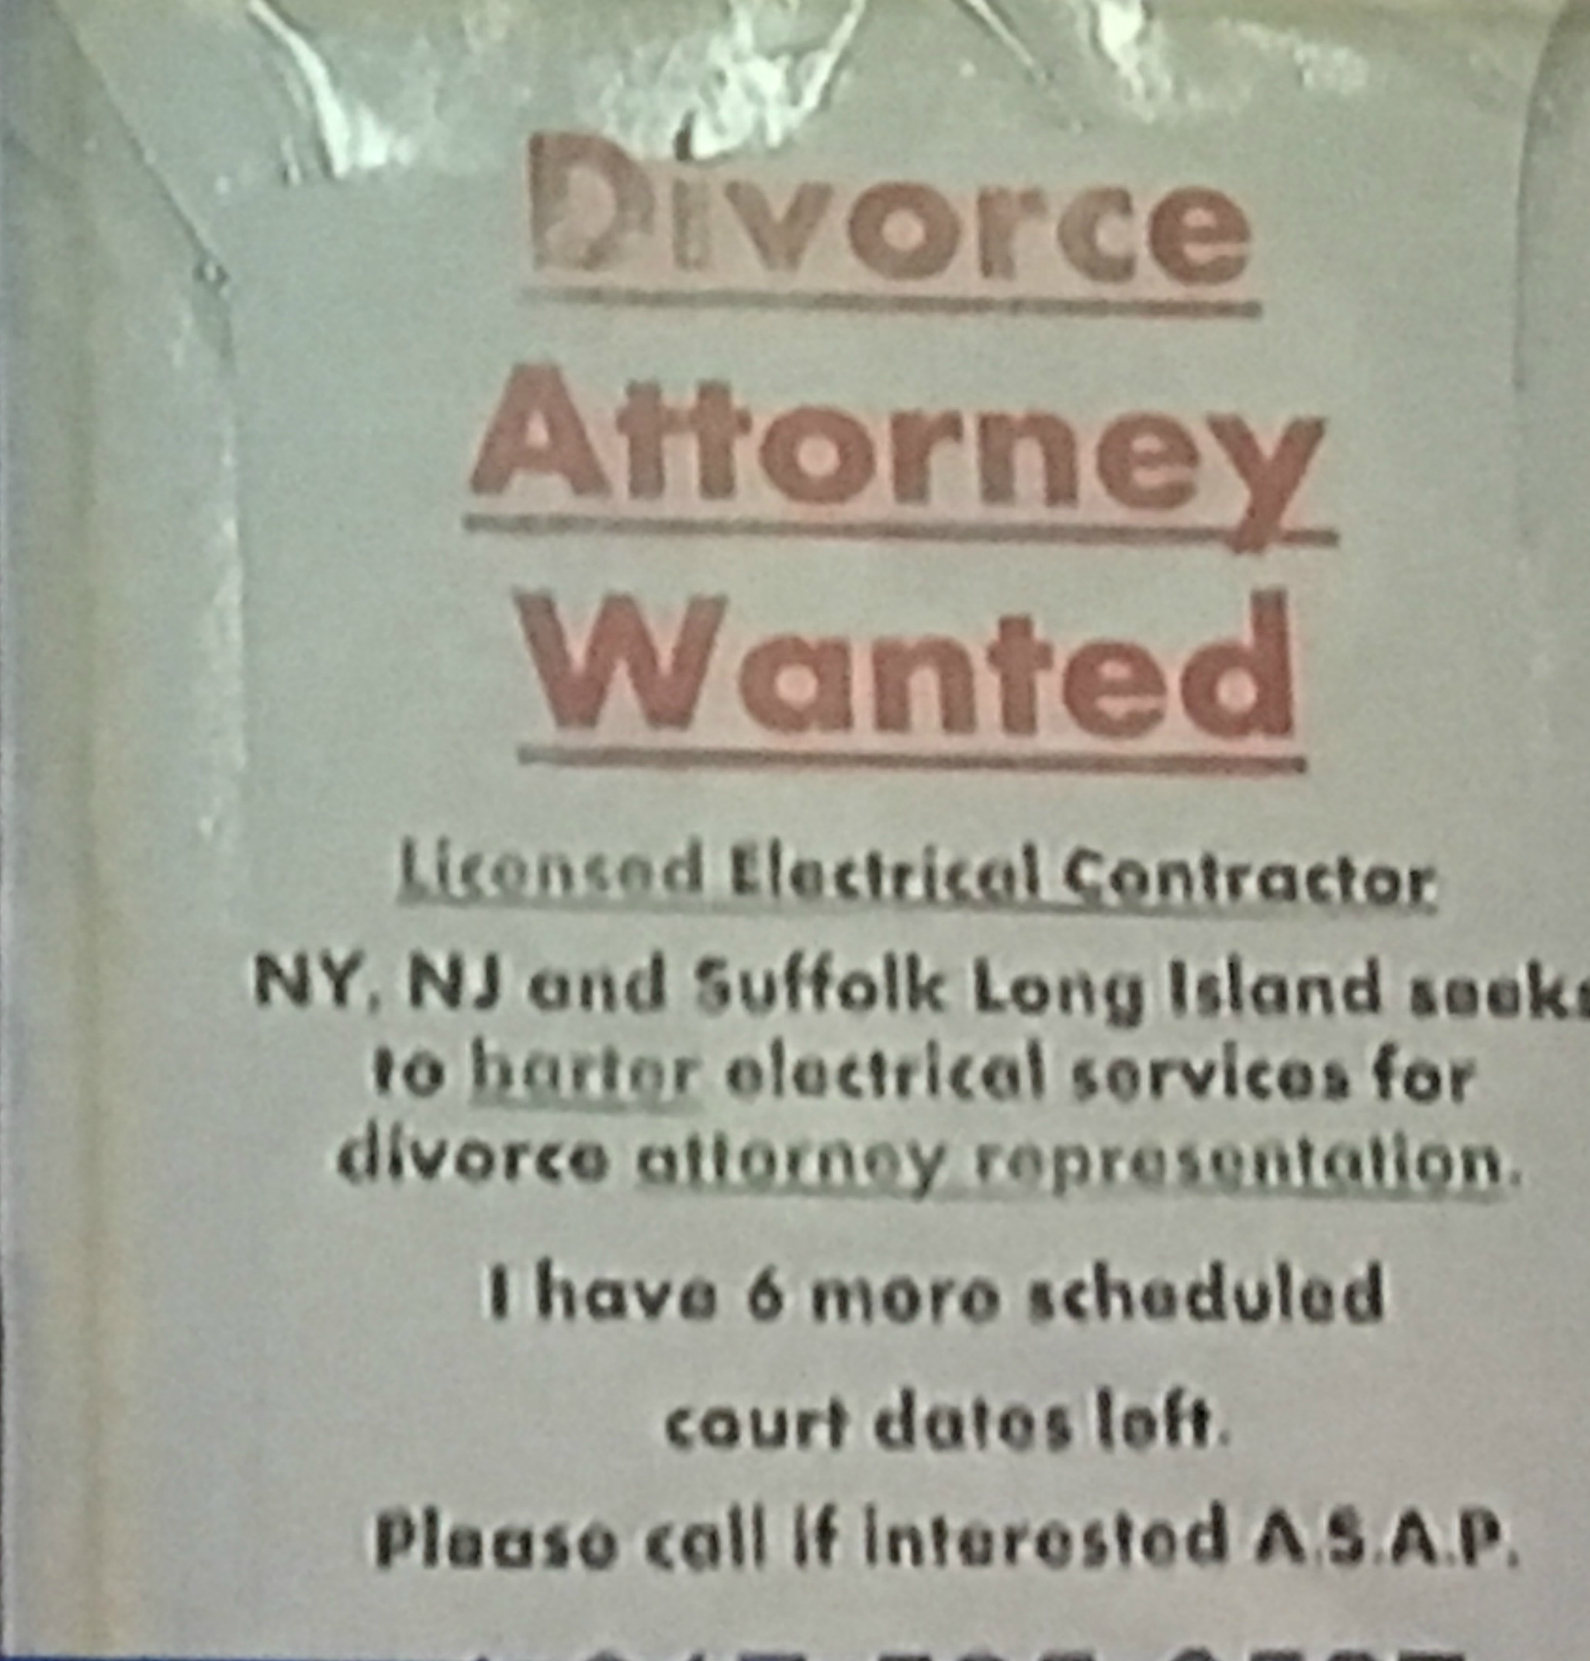 Attorney Wanted  Old Fashioned Wanted Poster